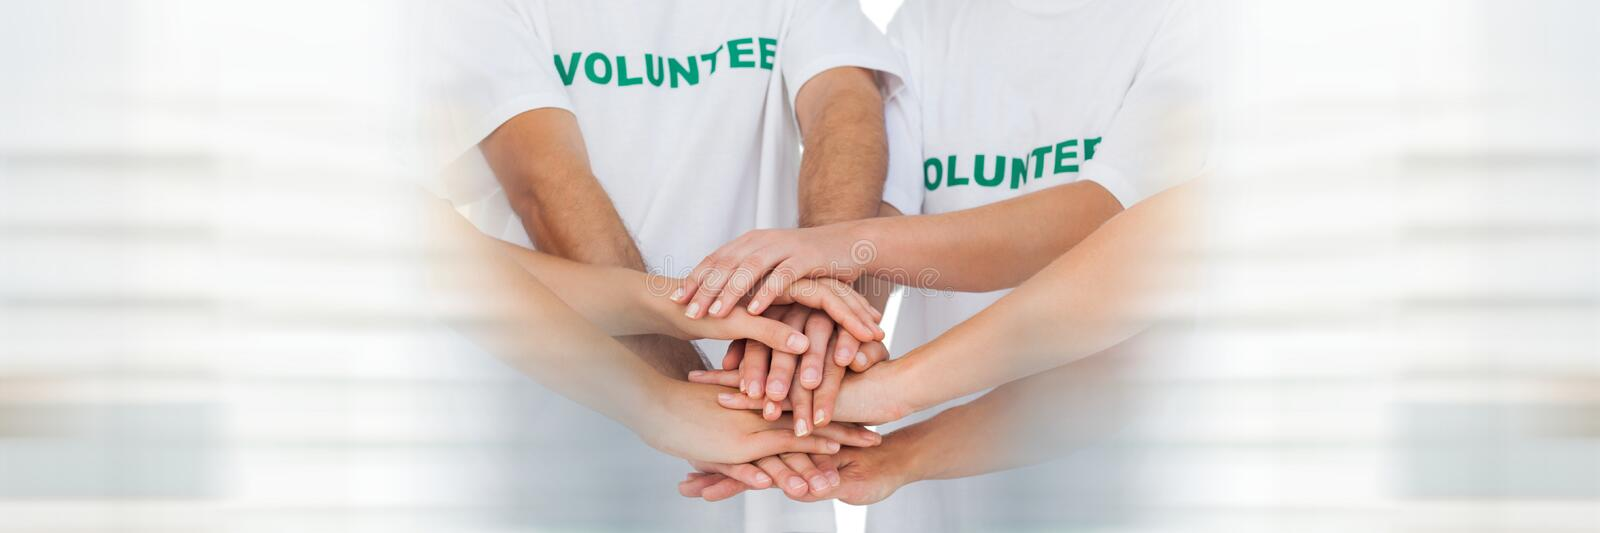 Close up of volunteer team putting hands together and blurry white framing royalty free stock image